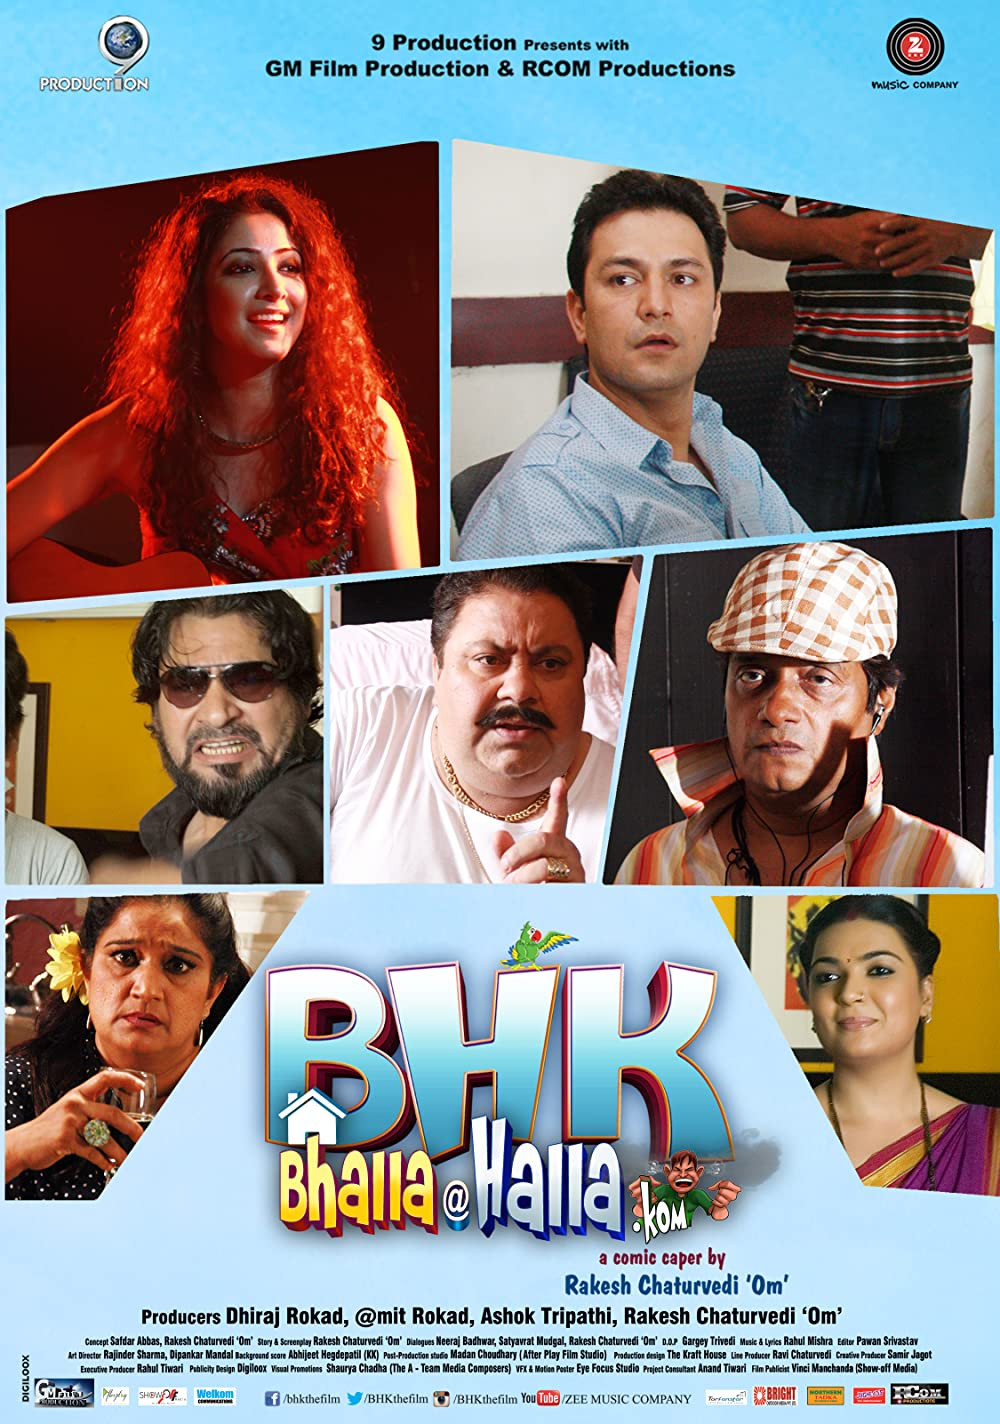 BHK Bhalla@Halla.Kom 2016 Hindi 720p HDRip ESubs 800MB x264 AAC